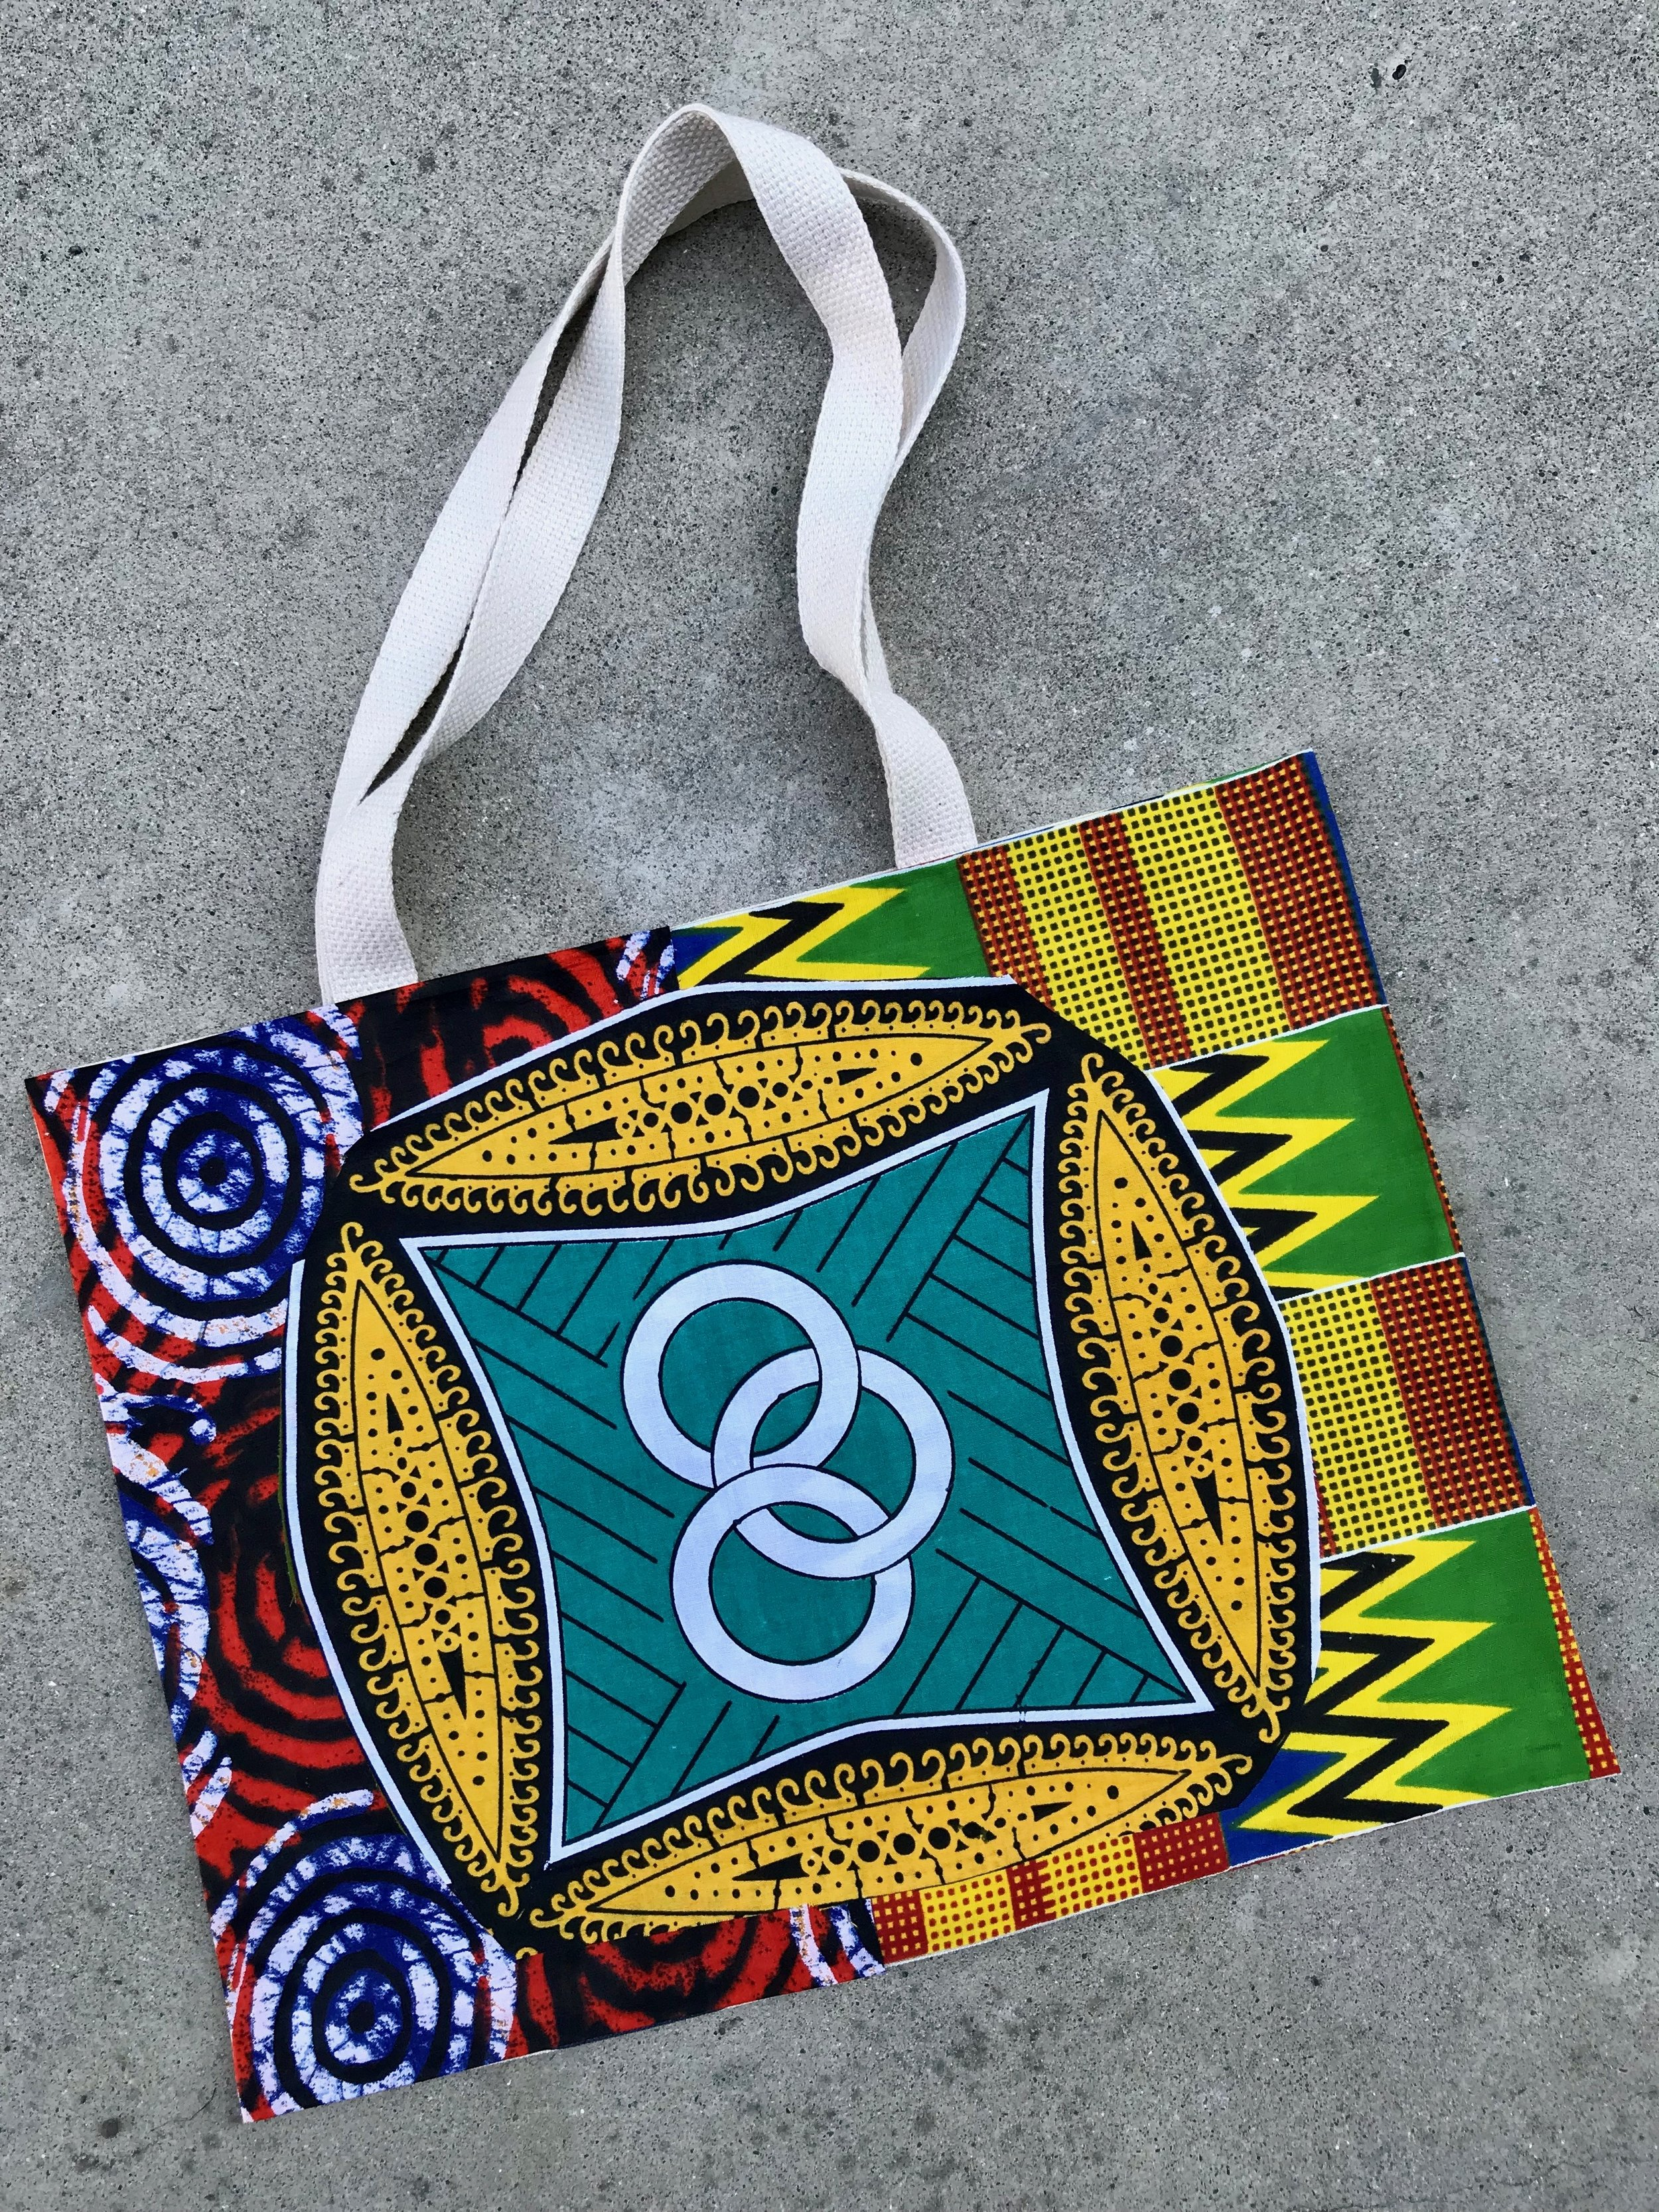 Day 343. Collaged African Prints Tote Bag